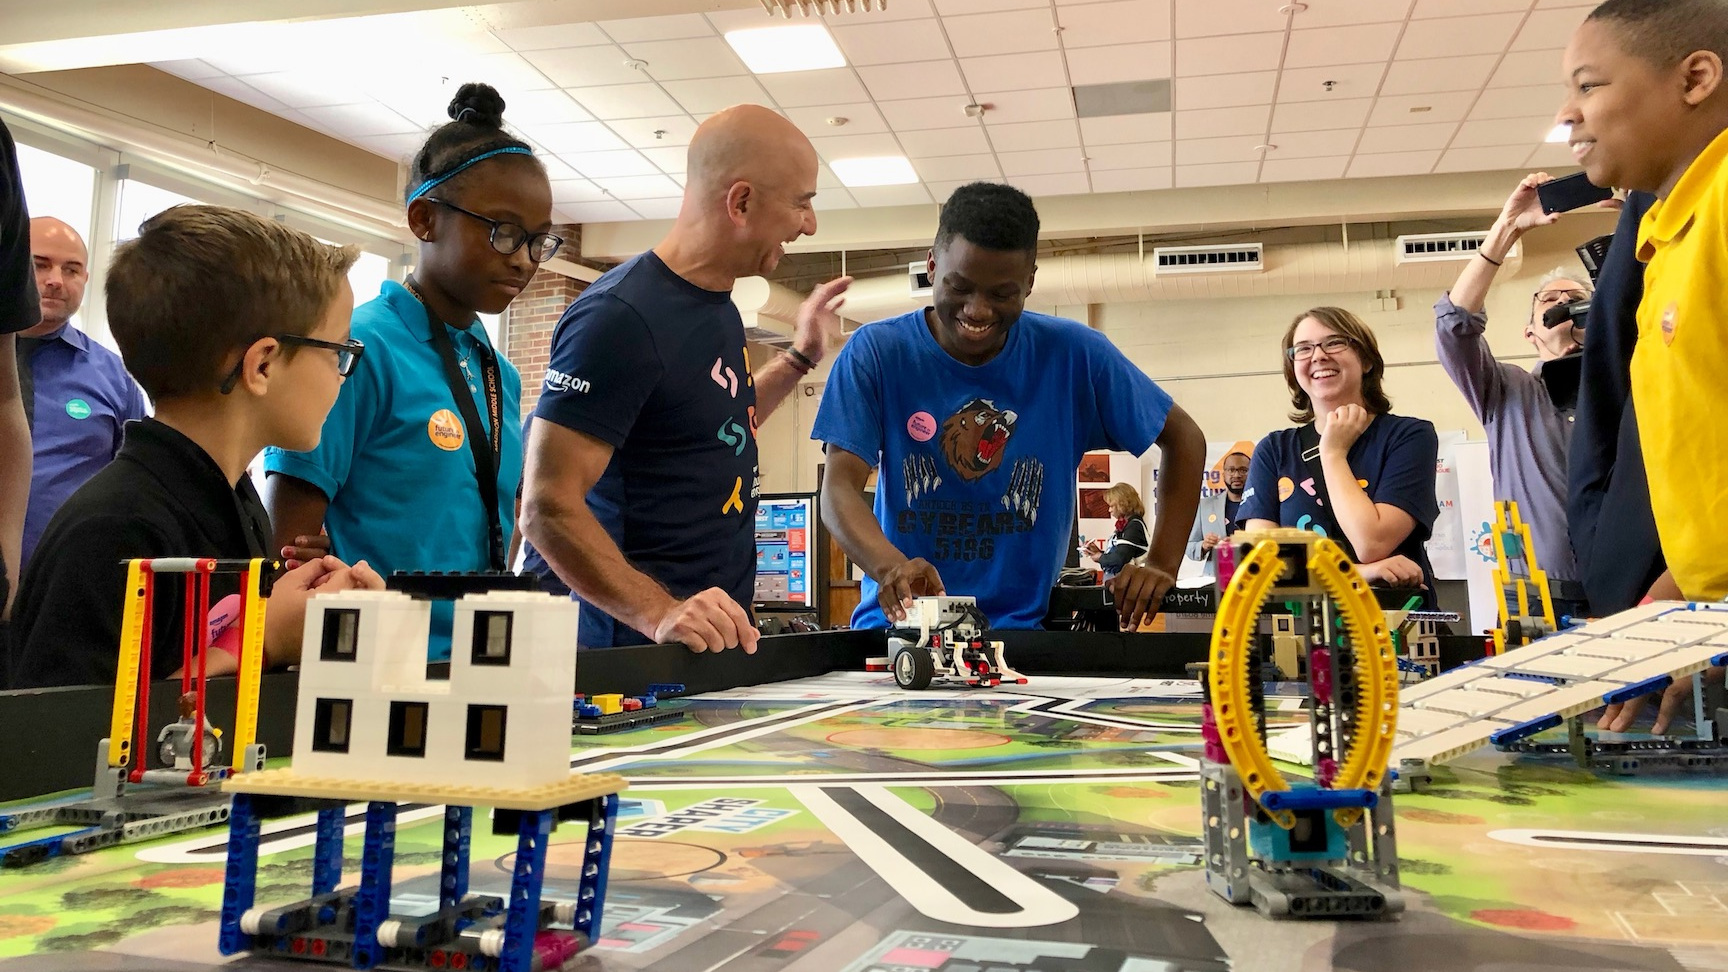 Amazon Founder Jeff Bezos visits MNPS for Future Engineer program launch